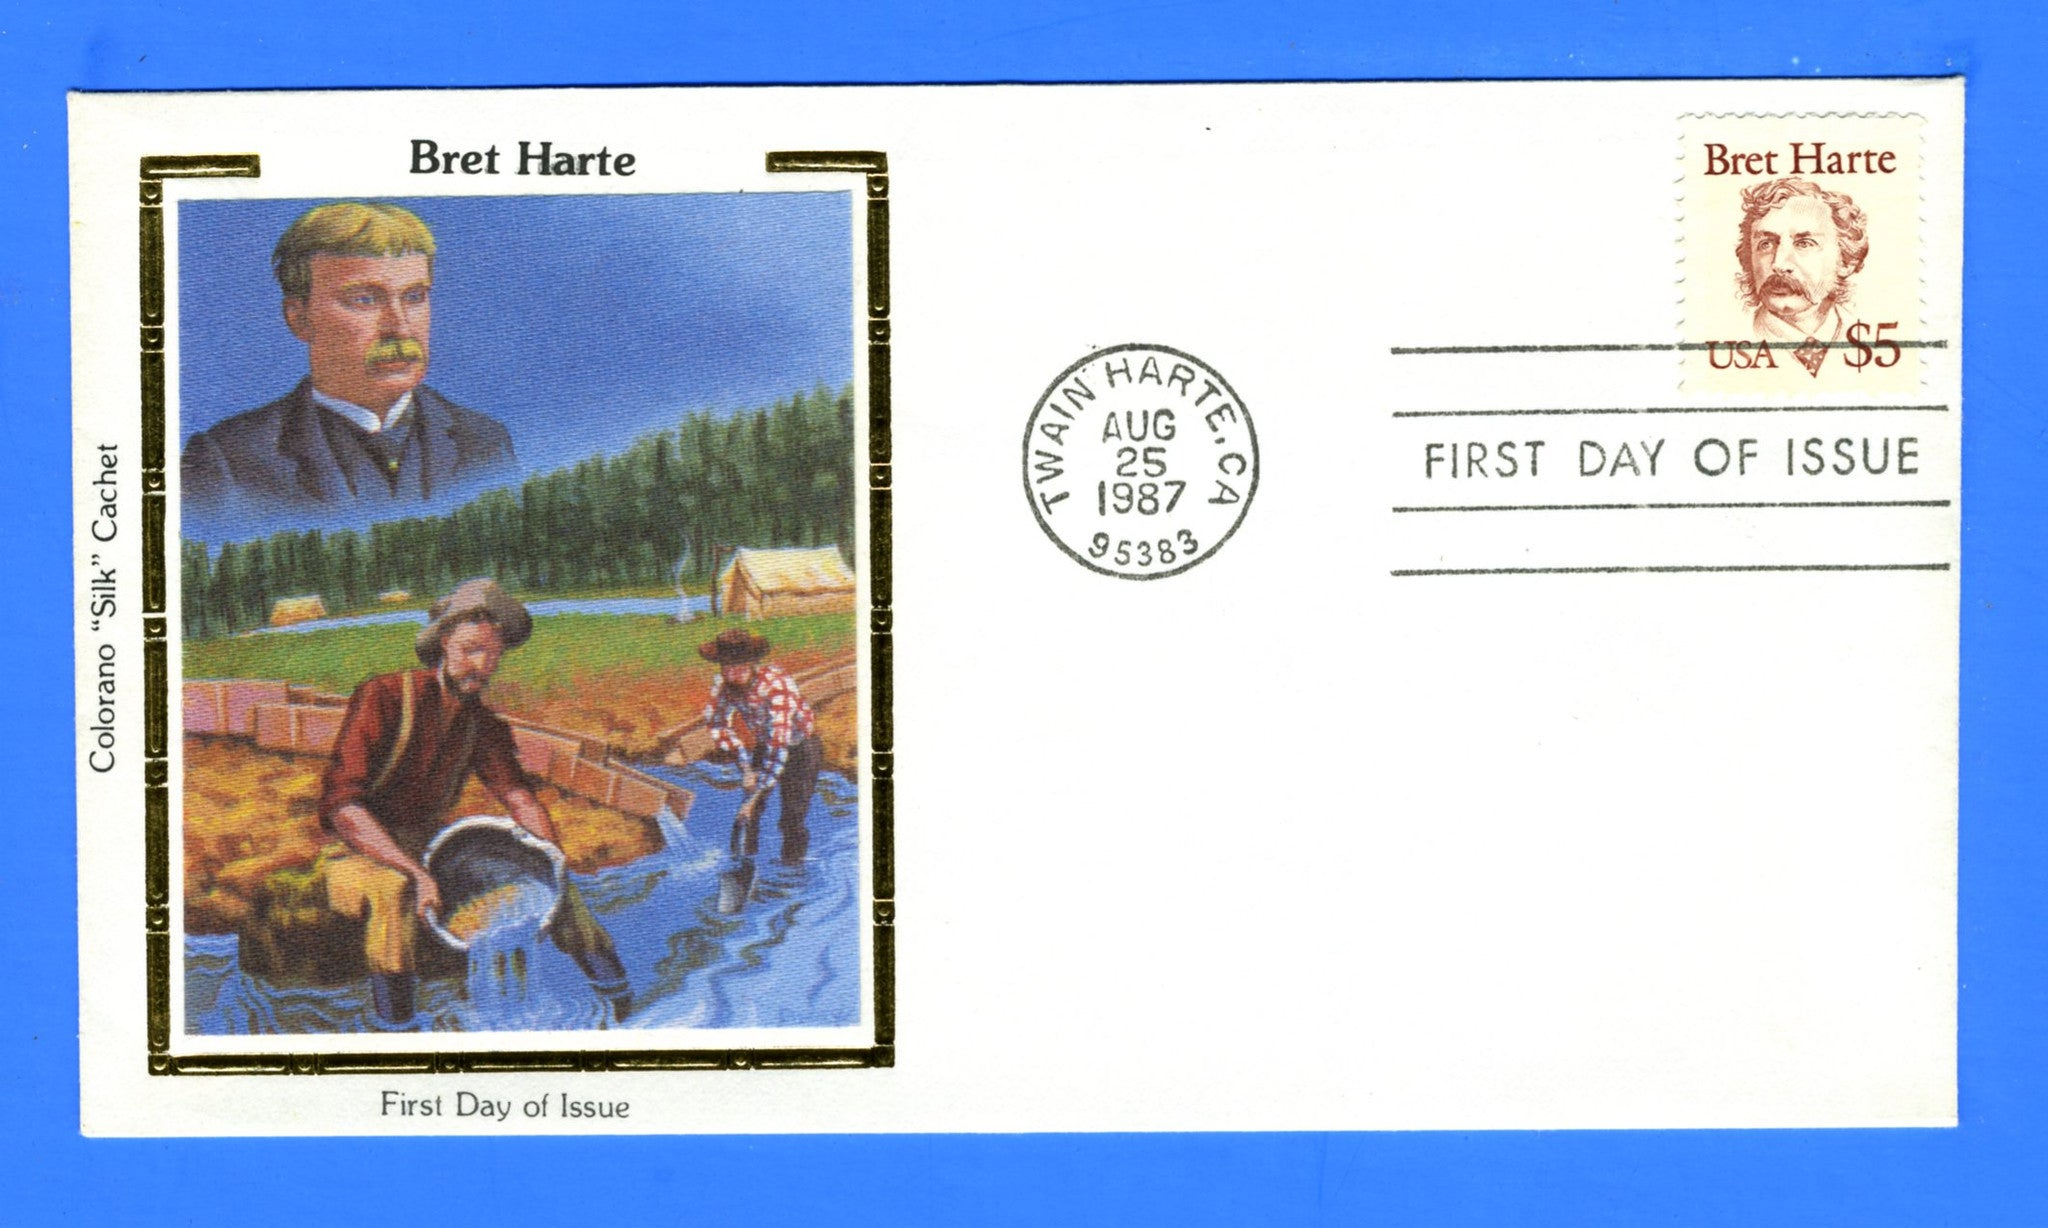 Scott 2196 $5 Bret Harte First Day Cover by Colorano